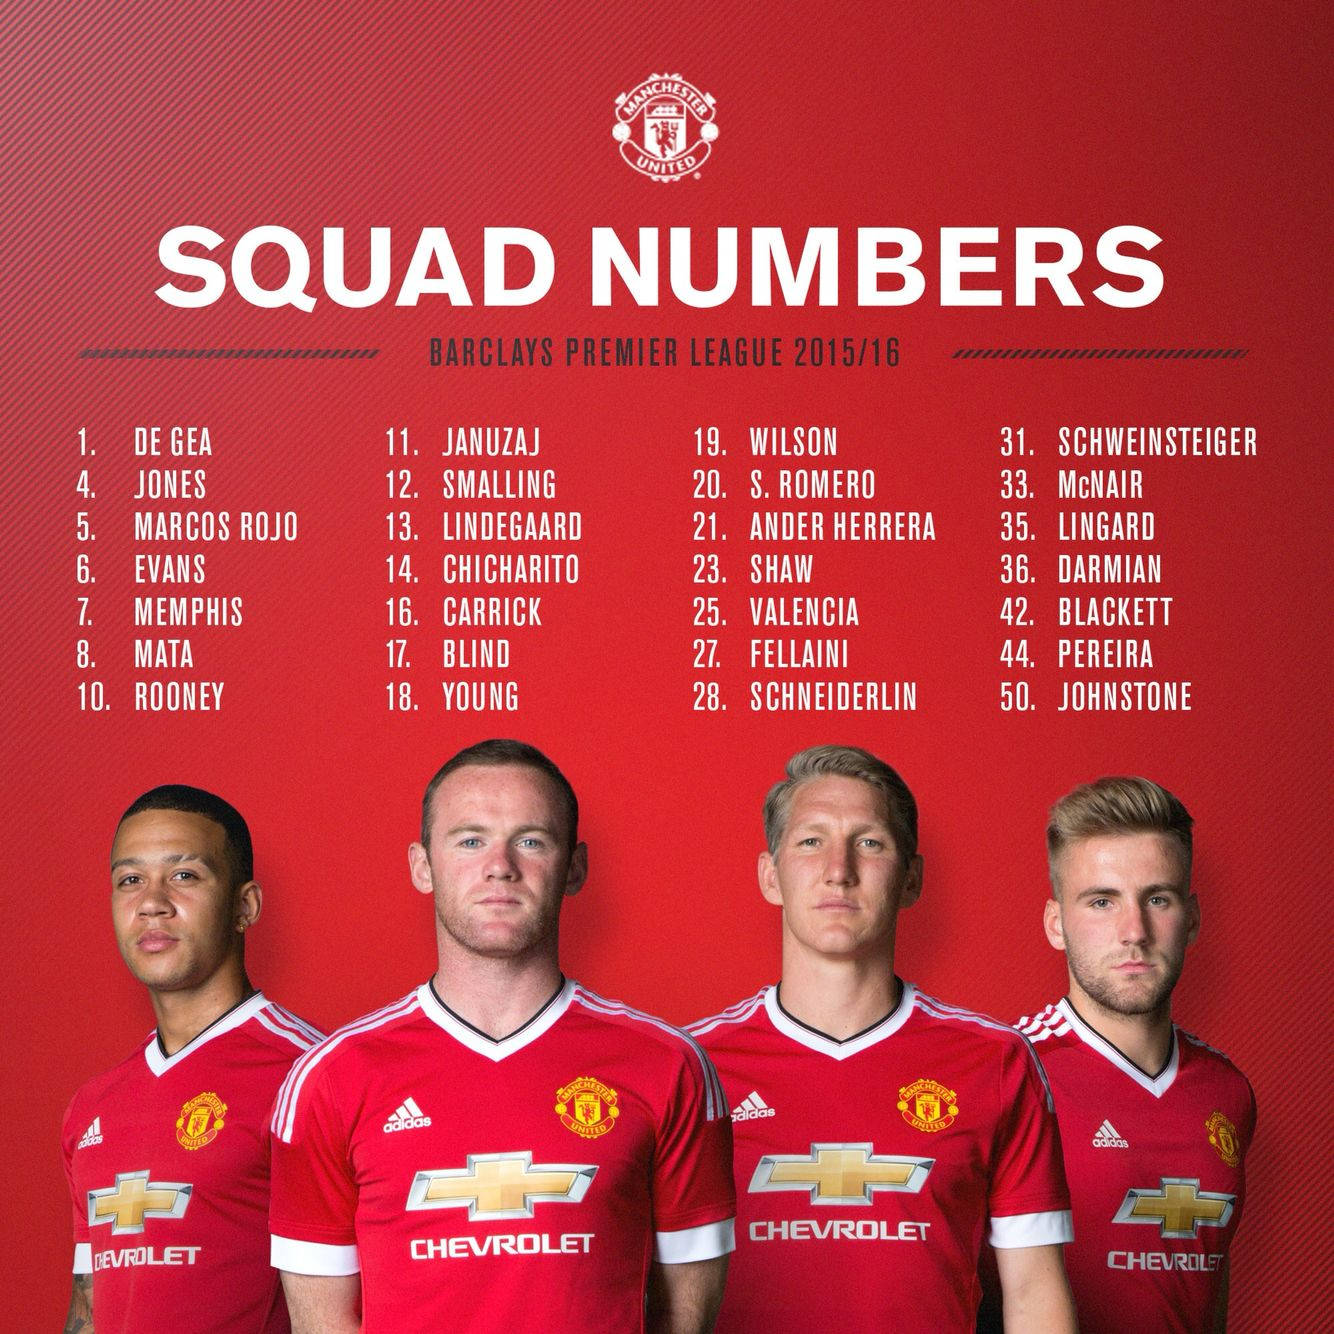 Manchester United Squad Numbers Redarmy Manchester United Manchester United Football Club Manchester United Shirt